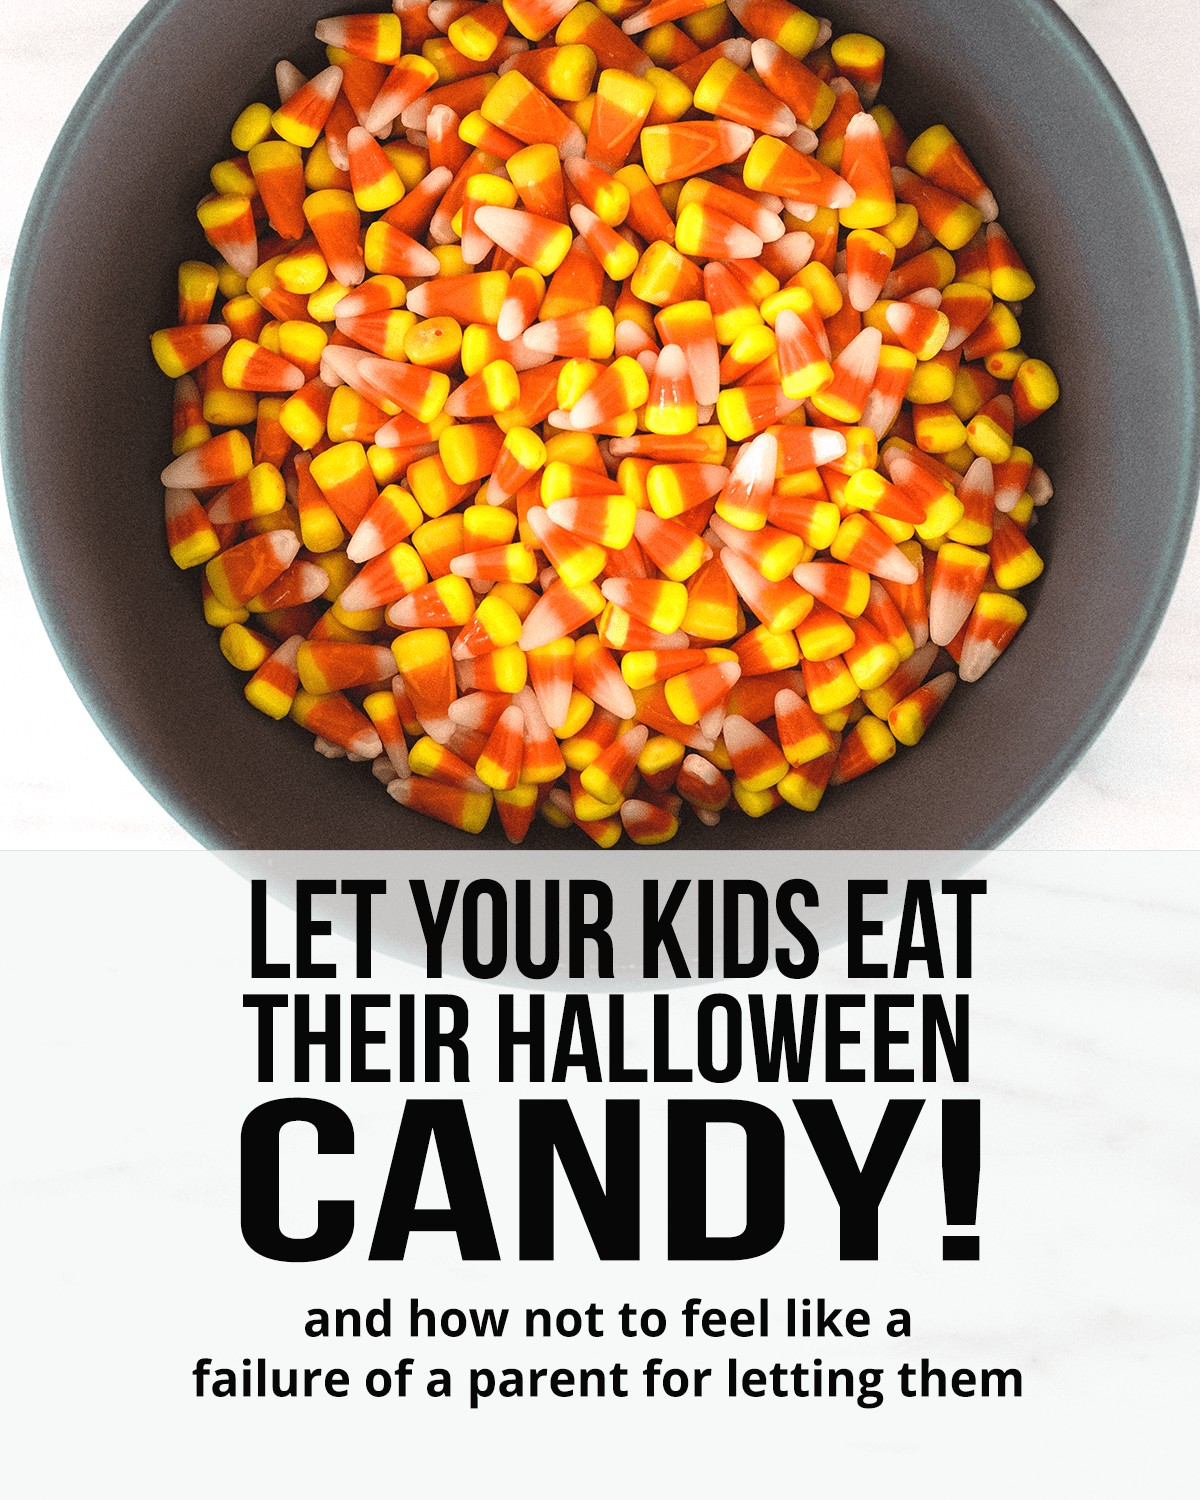 How to let your kids eat ALL the Halloween candy they want (and not feel like a failure of a parent for doing so!) #halloween #halloweencandy #parentingwin #feedingkids #healthykids #halloweentreats